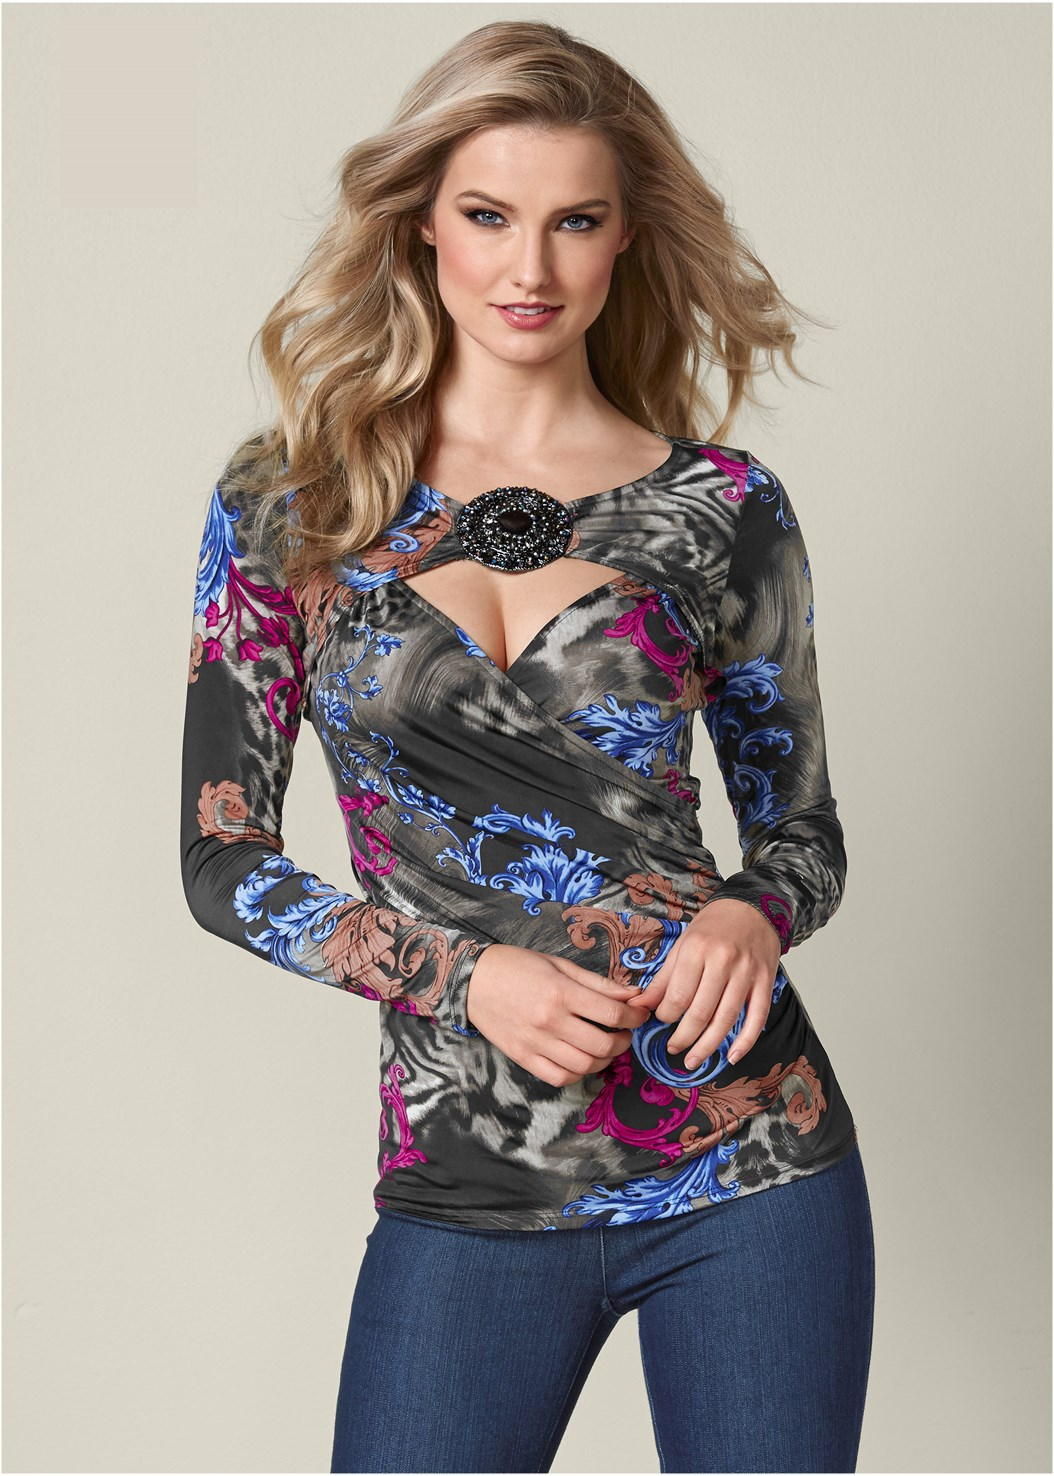 Embellished Cut Out Top,Mid Rise Full Length Slimming Stretch Jeggings,High Heel Strappy Sandals